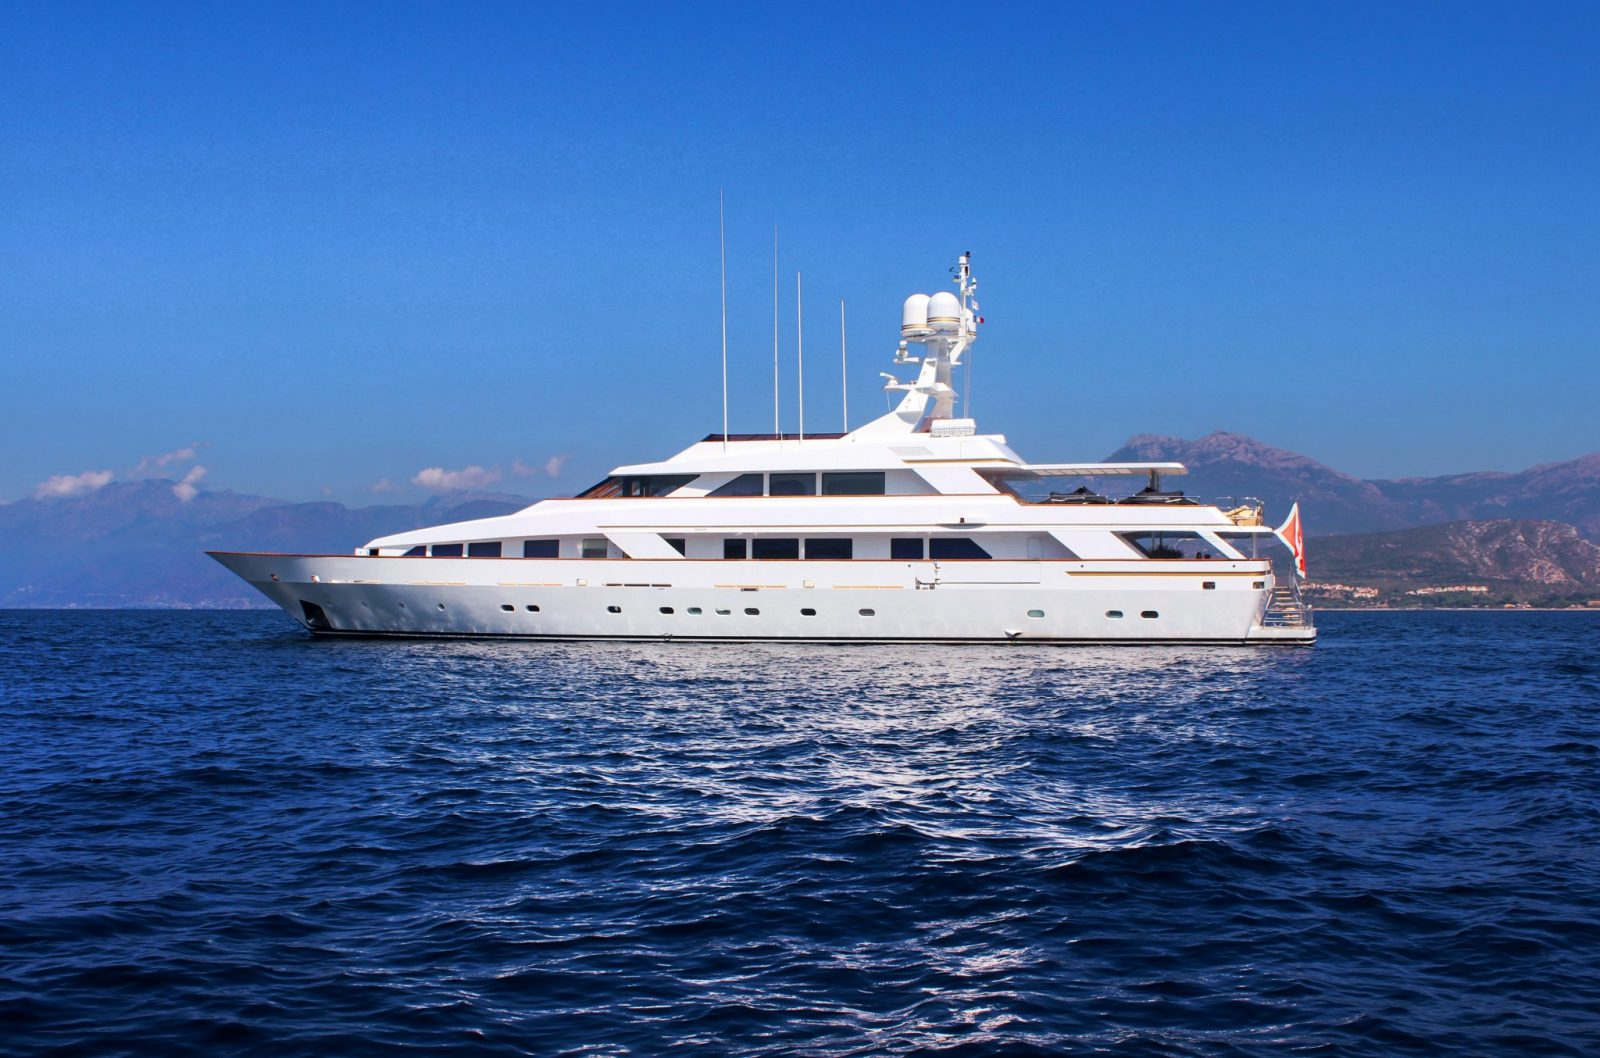 Luxury yacht for Sale or Charter | MISTRESS by Benetti